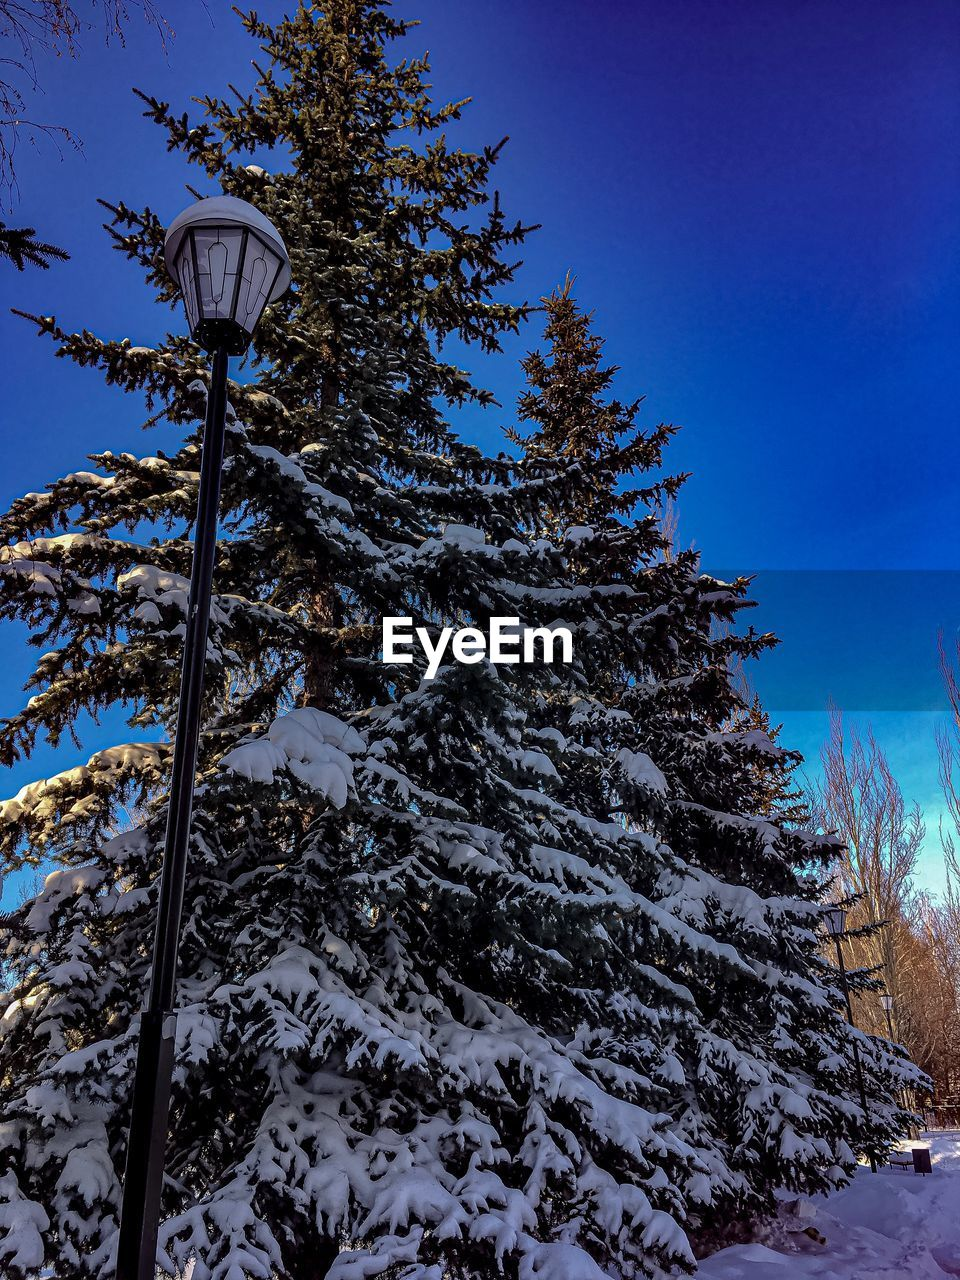 snow, winter, cold temperature, tree, plant, sky, nature, low angle view, scenics - nature, no people, covering, tranquility, beauty in nature, land, tranquil scene, day, frozen, mountain, blue, outdoors, pine tree, coniferous tree, snowcapped mountain